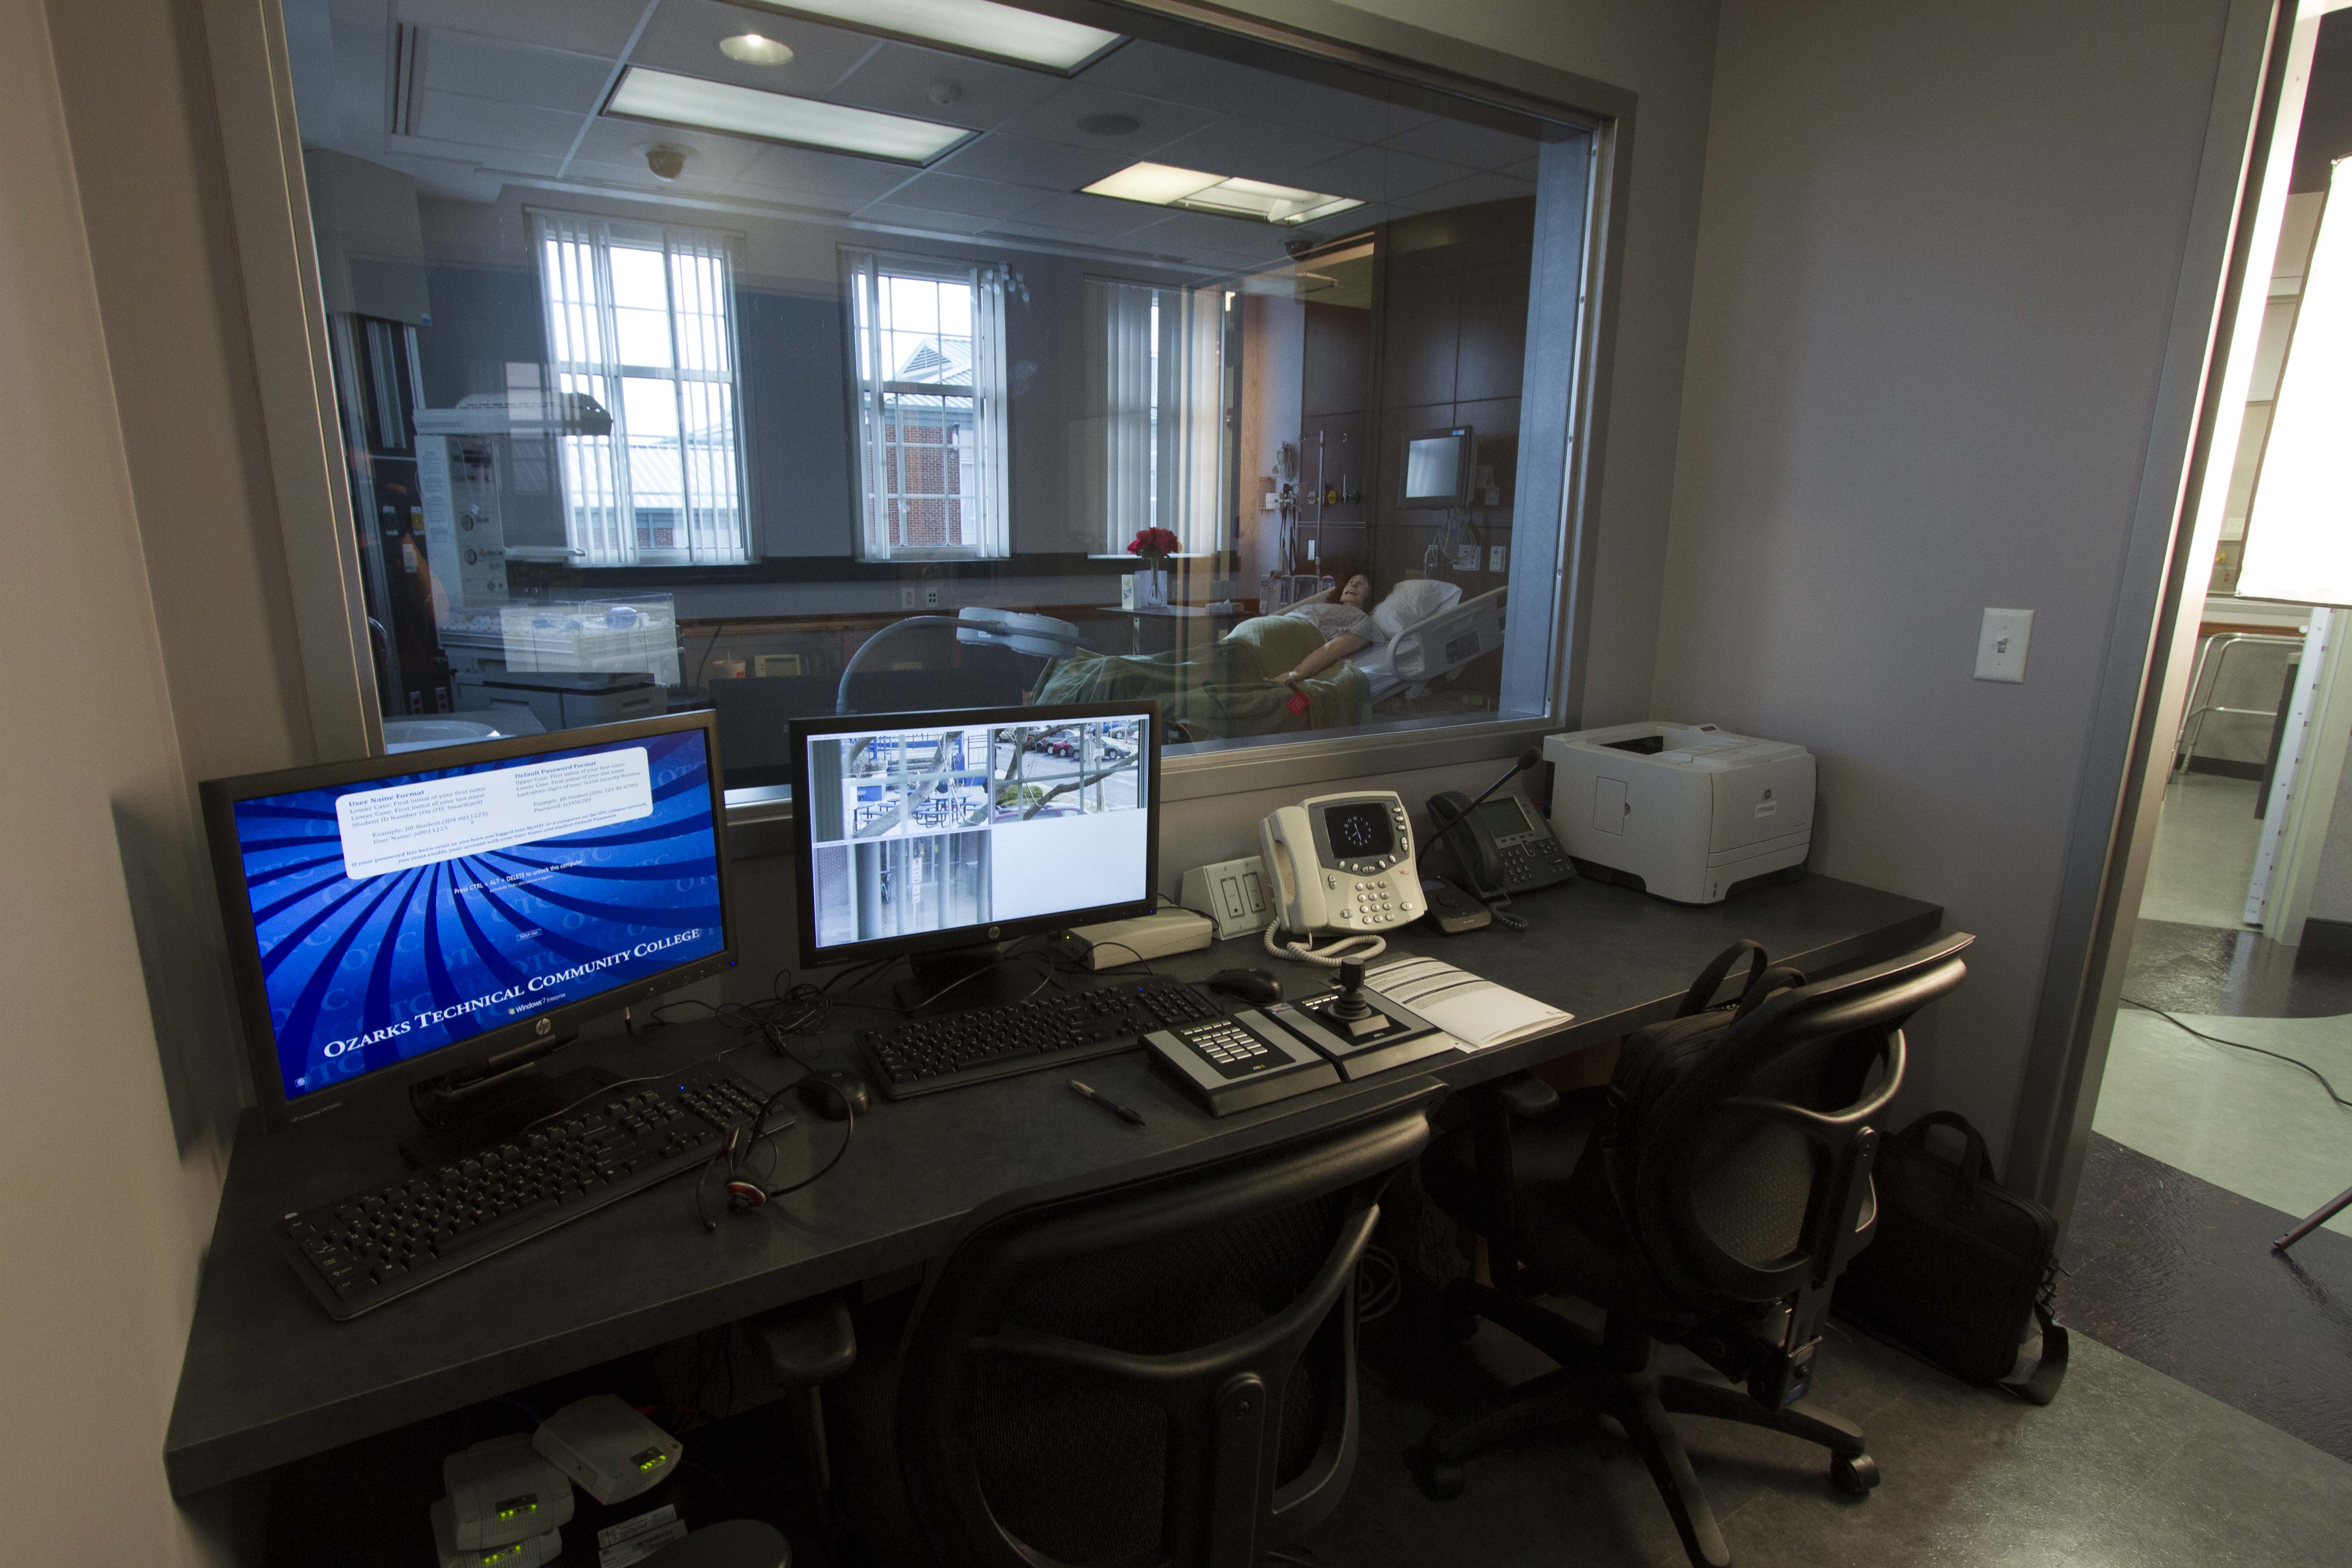 About the Simulation Center